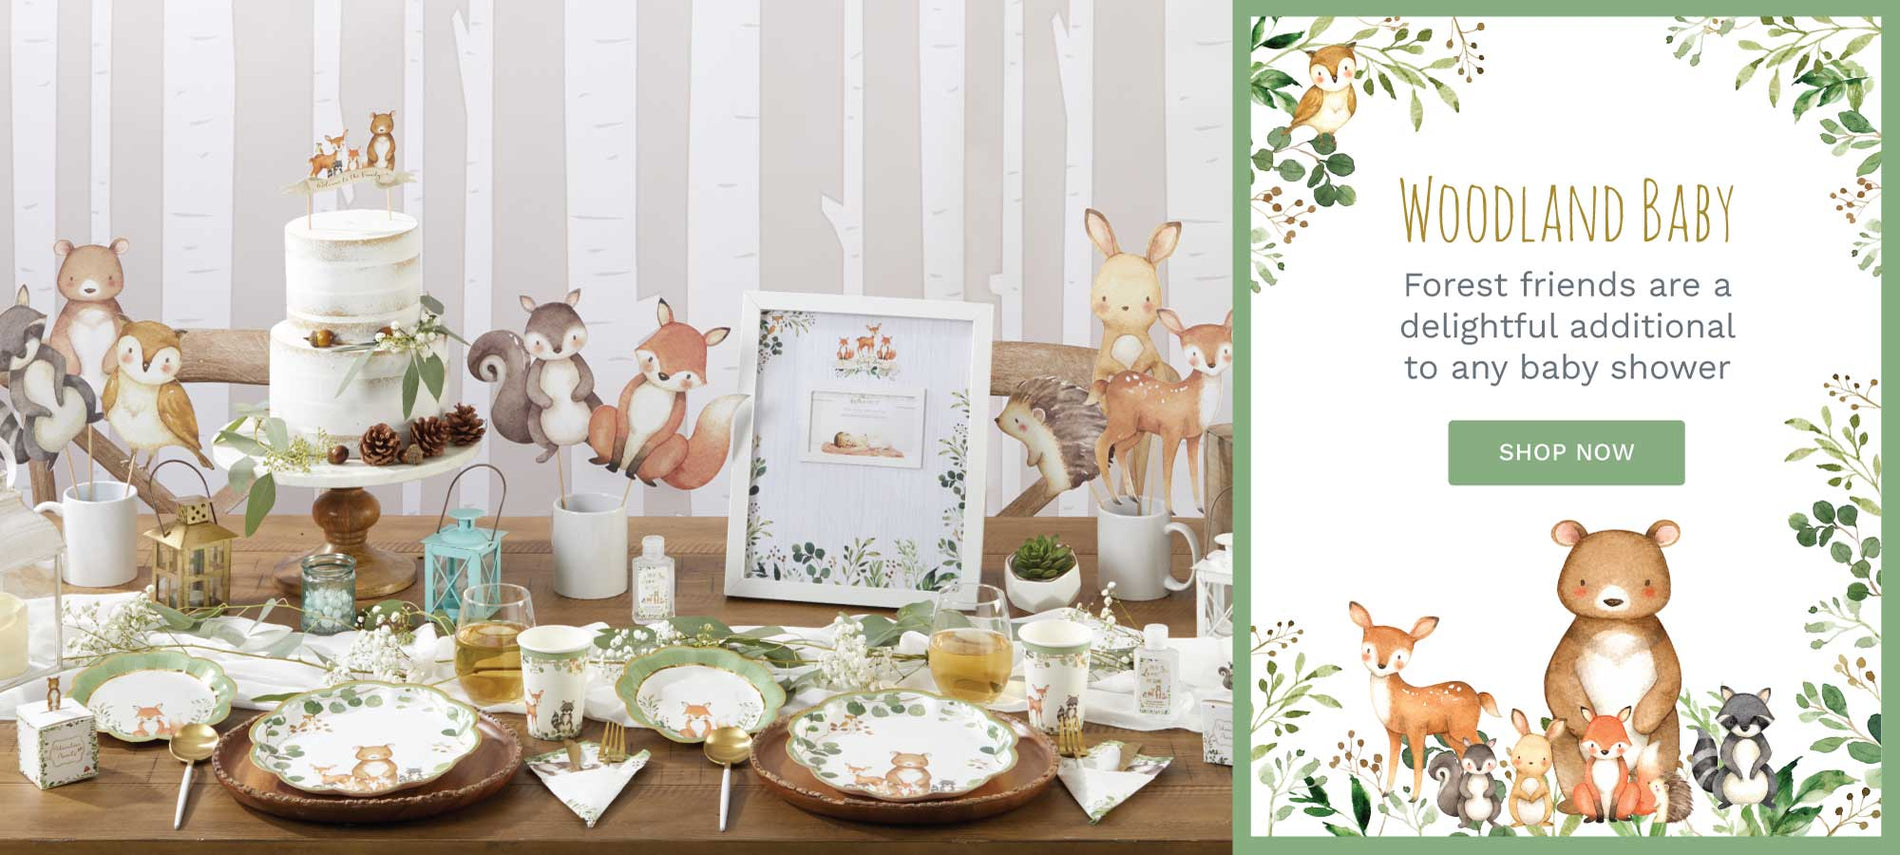 Forest friends are a delightful addition to any baby shower! Shop our Woodland Baby Shower Collection now!